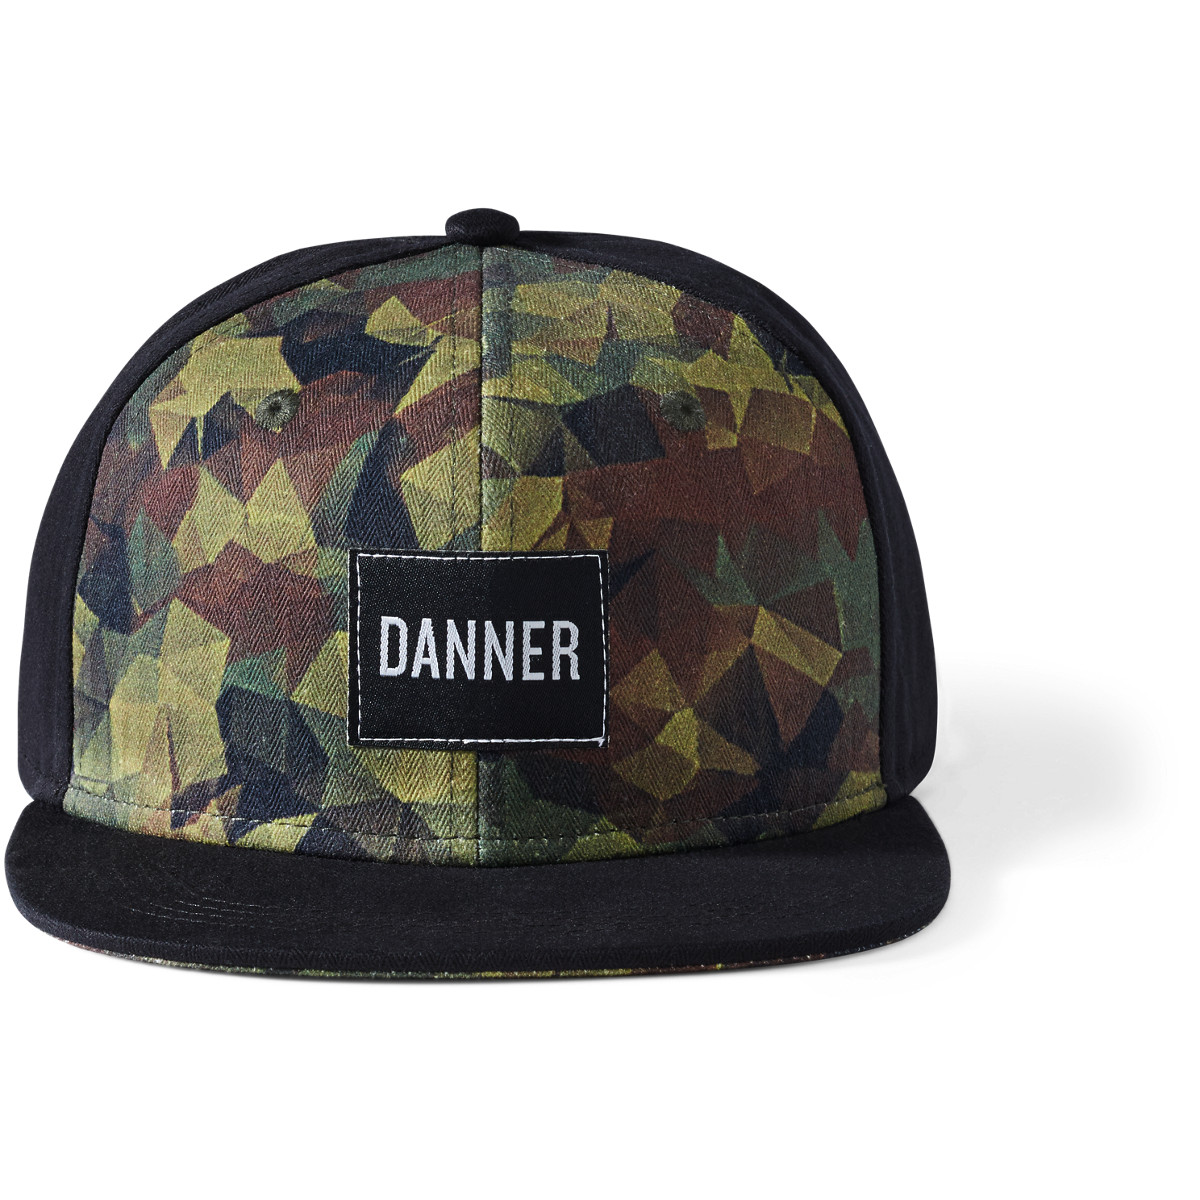 Danner Five Panel Hat - Green/Brown/Black